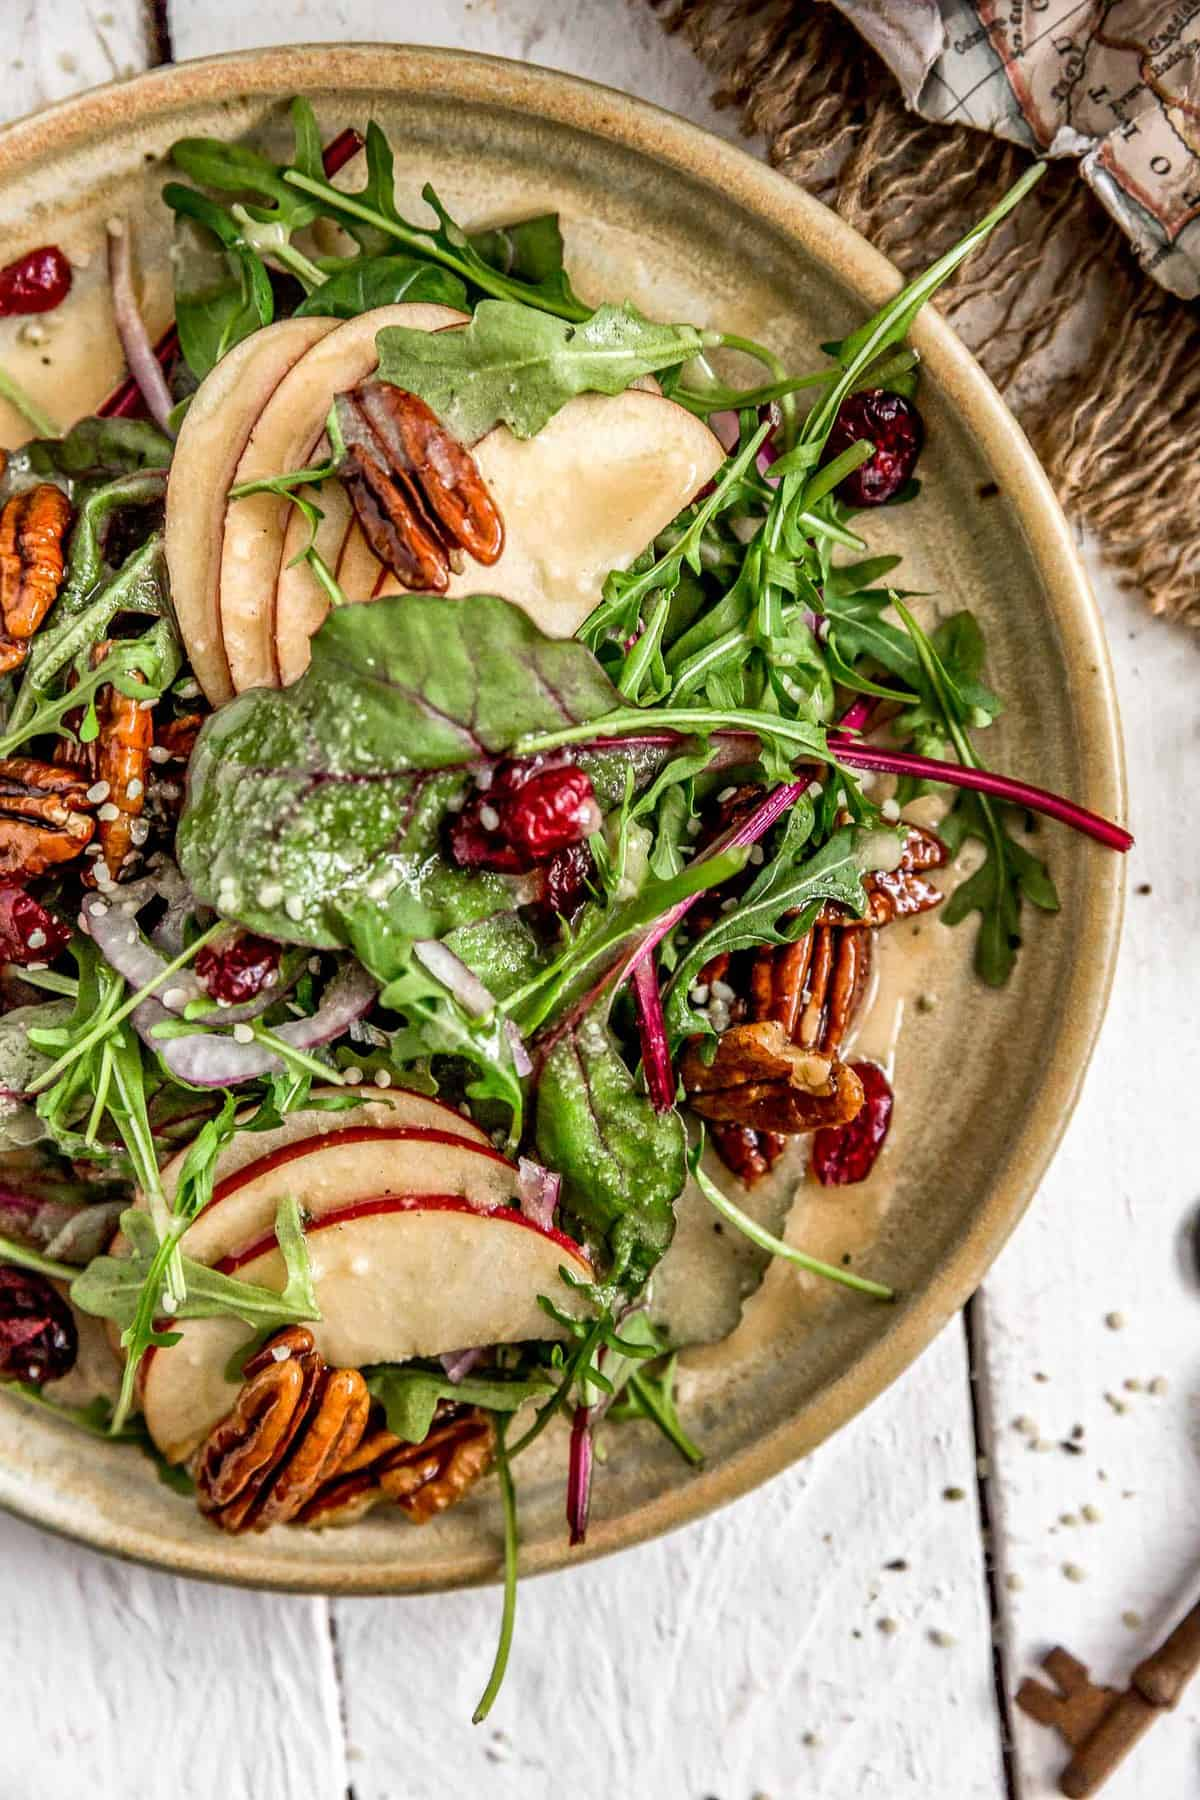 Beet Greens and Apple Salad with Maple Mustard Vinaigrette